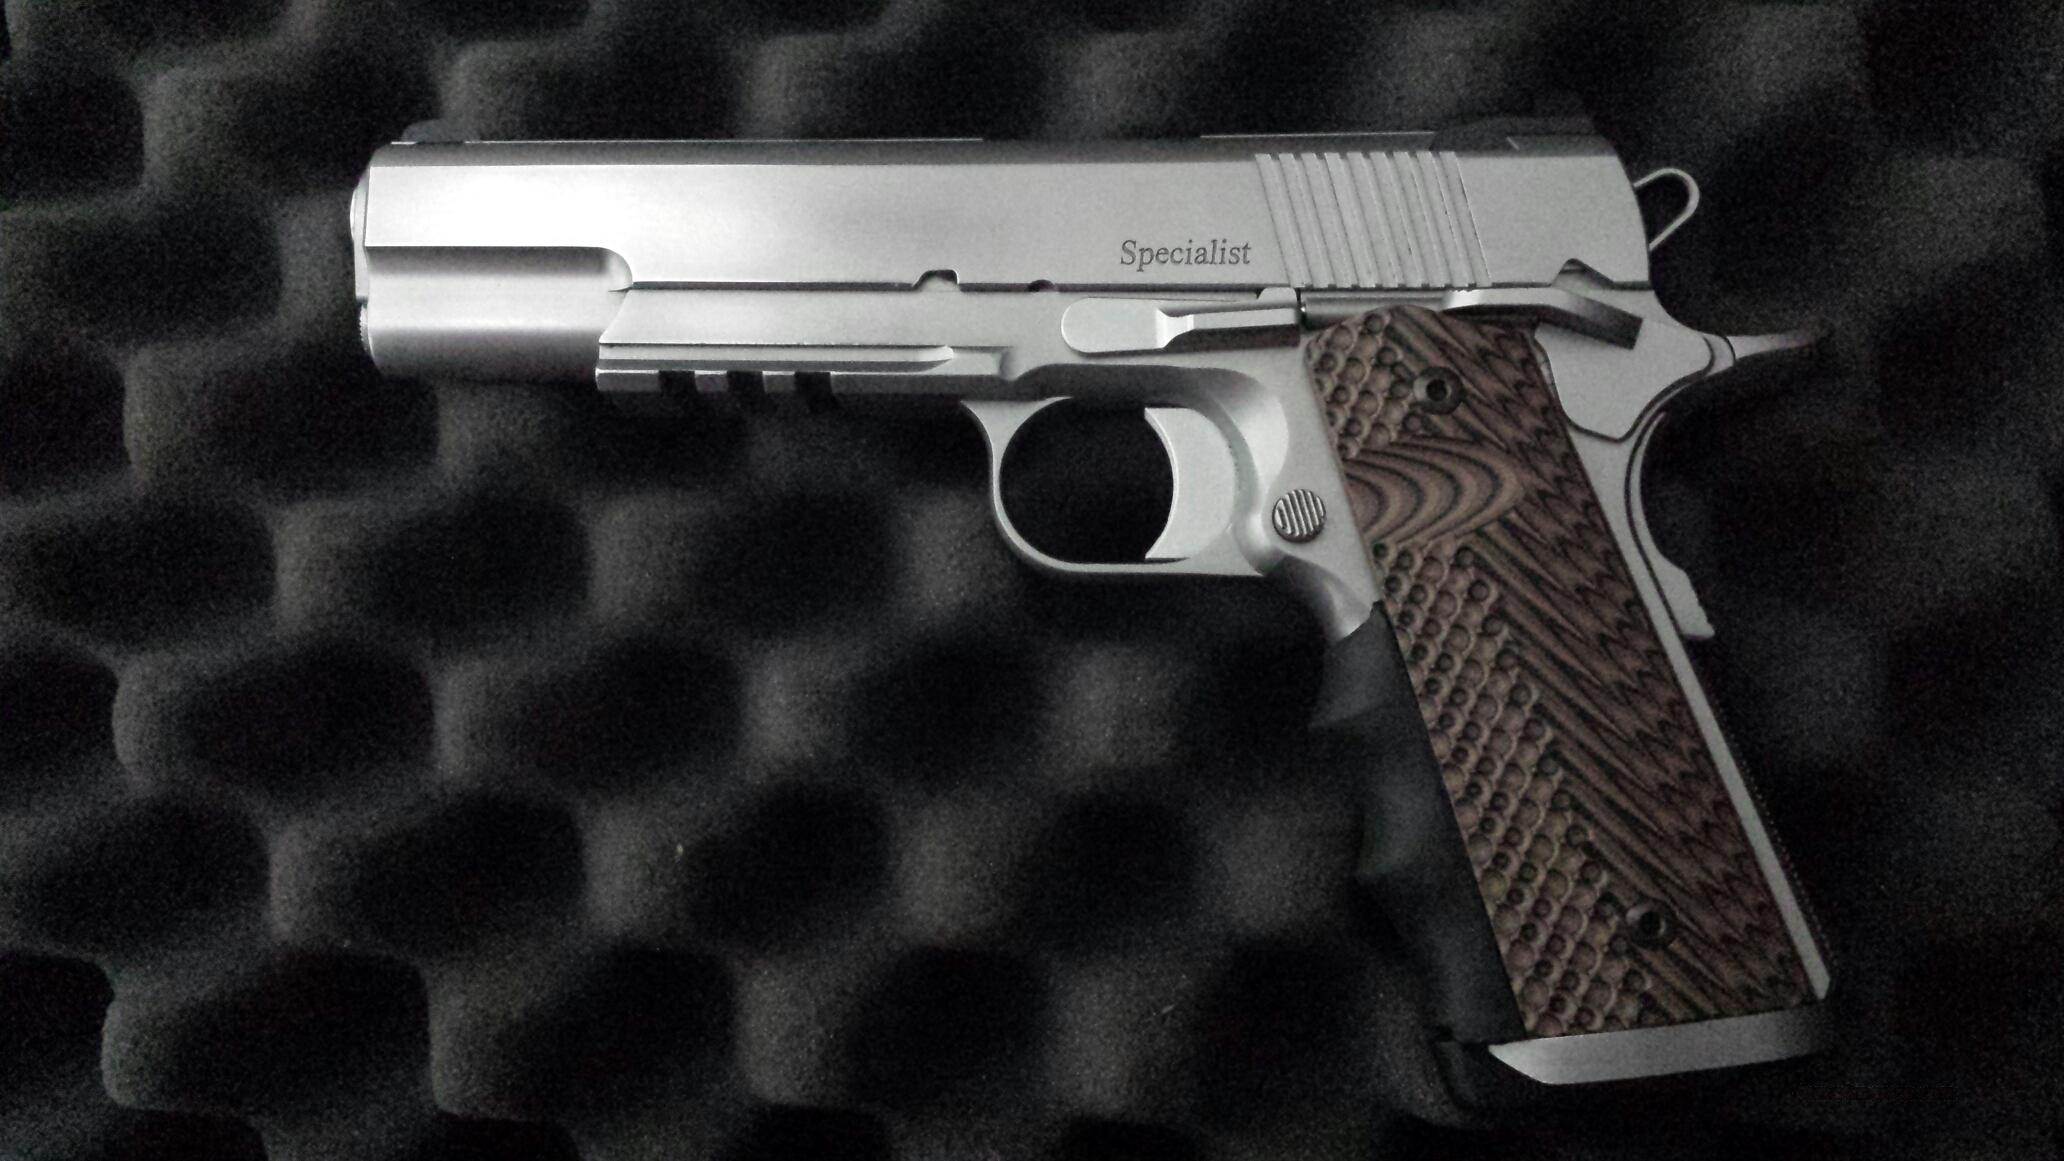 Dan Wesson Stainless Specialist  Guns > Pistols > Dan Wesson Pistols/Revolvers > 1911 Style